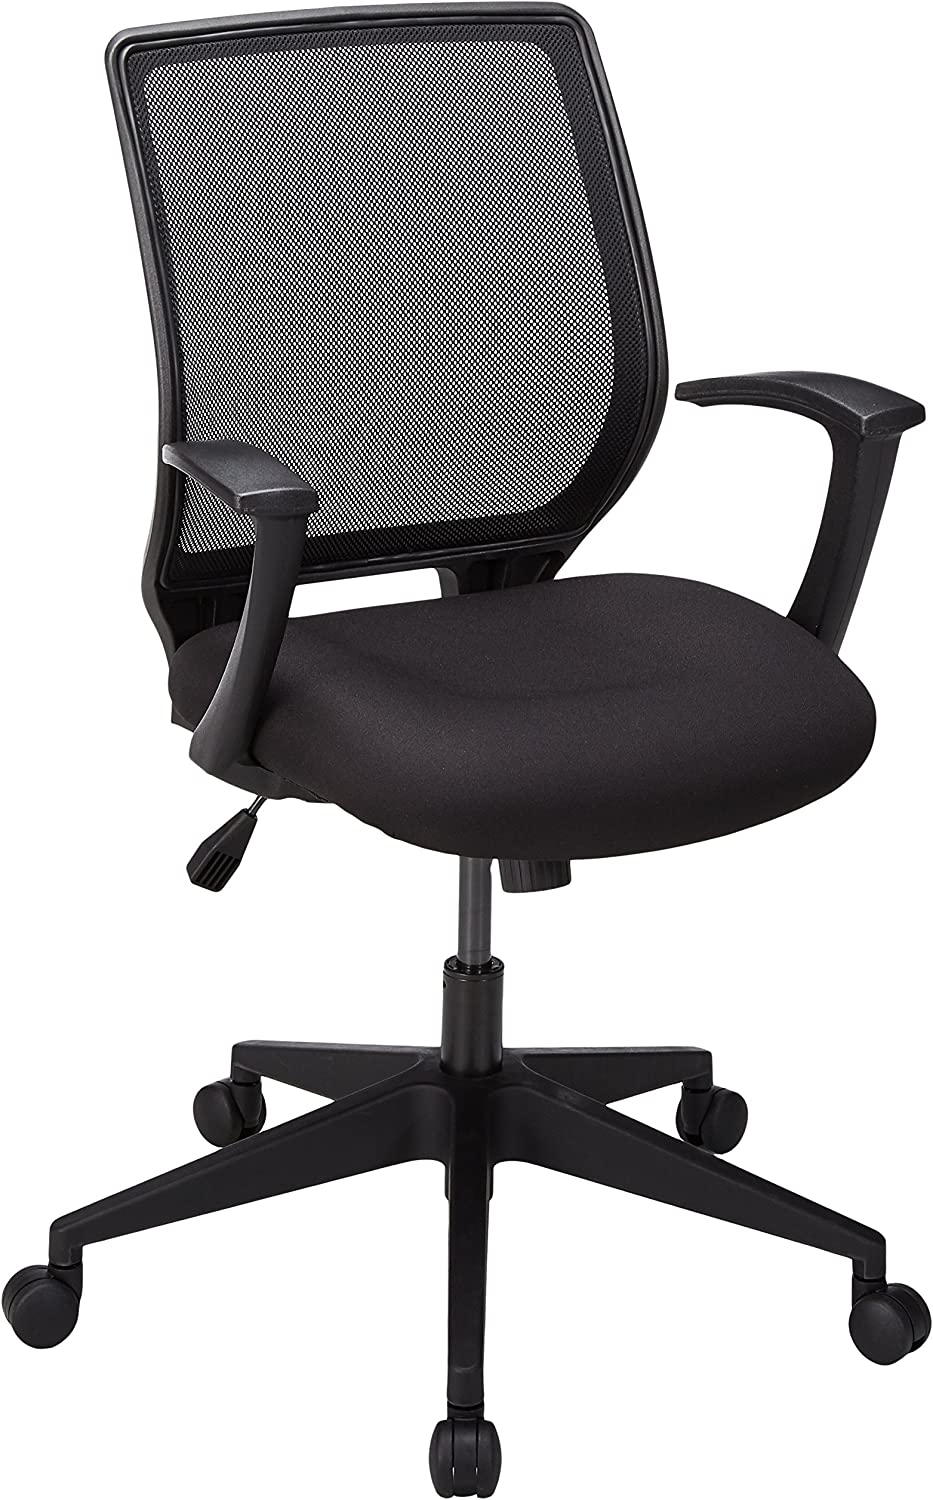 Lorell LLR84868 Executive Mid-Back Work Chair 2.6 Height X 62.5 Width X 26.8 Length Black